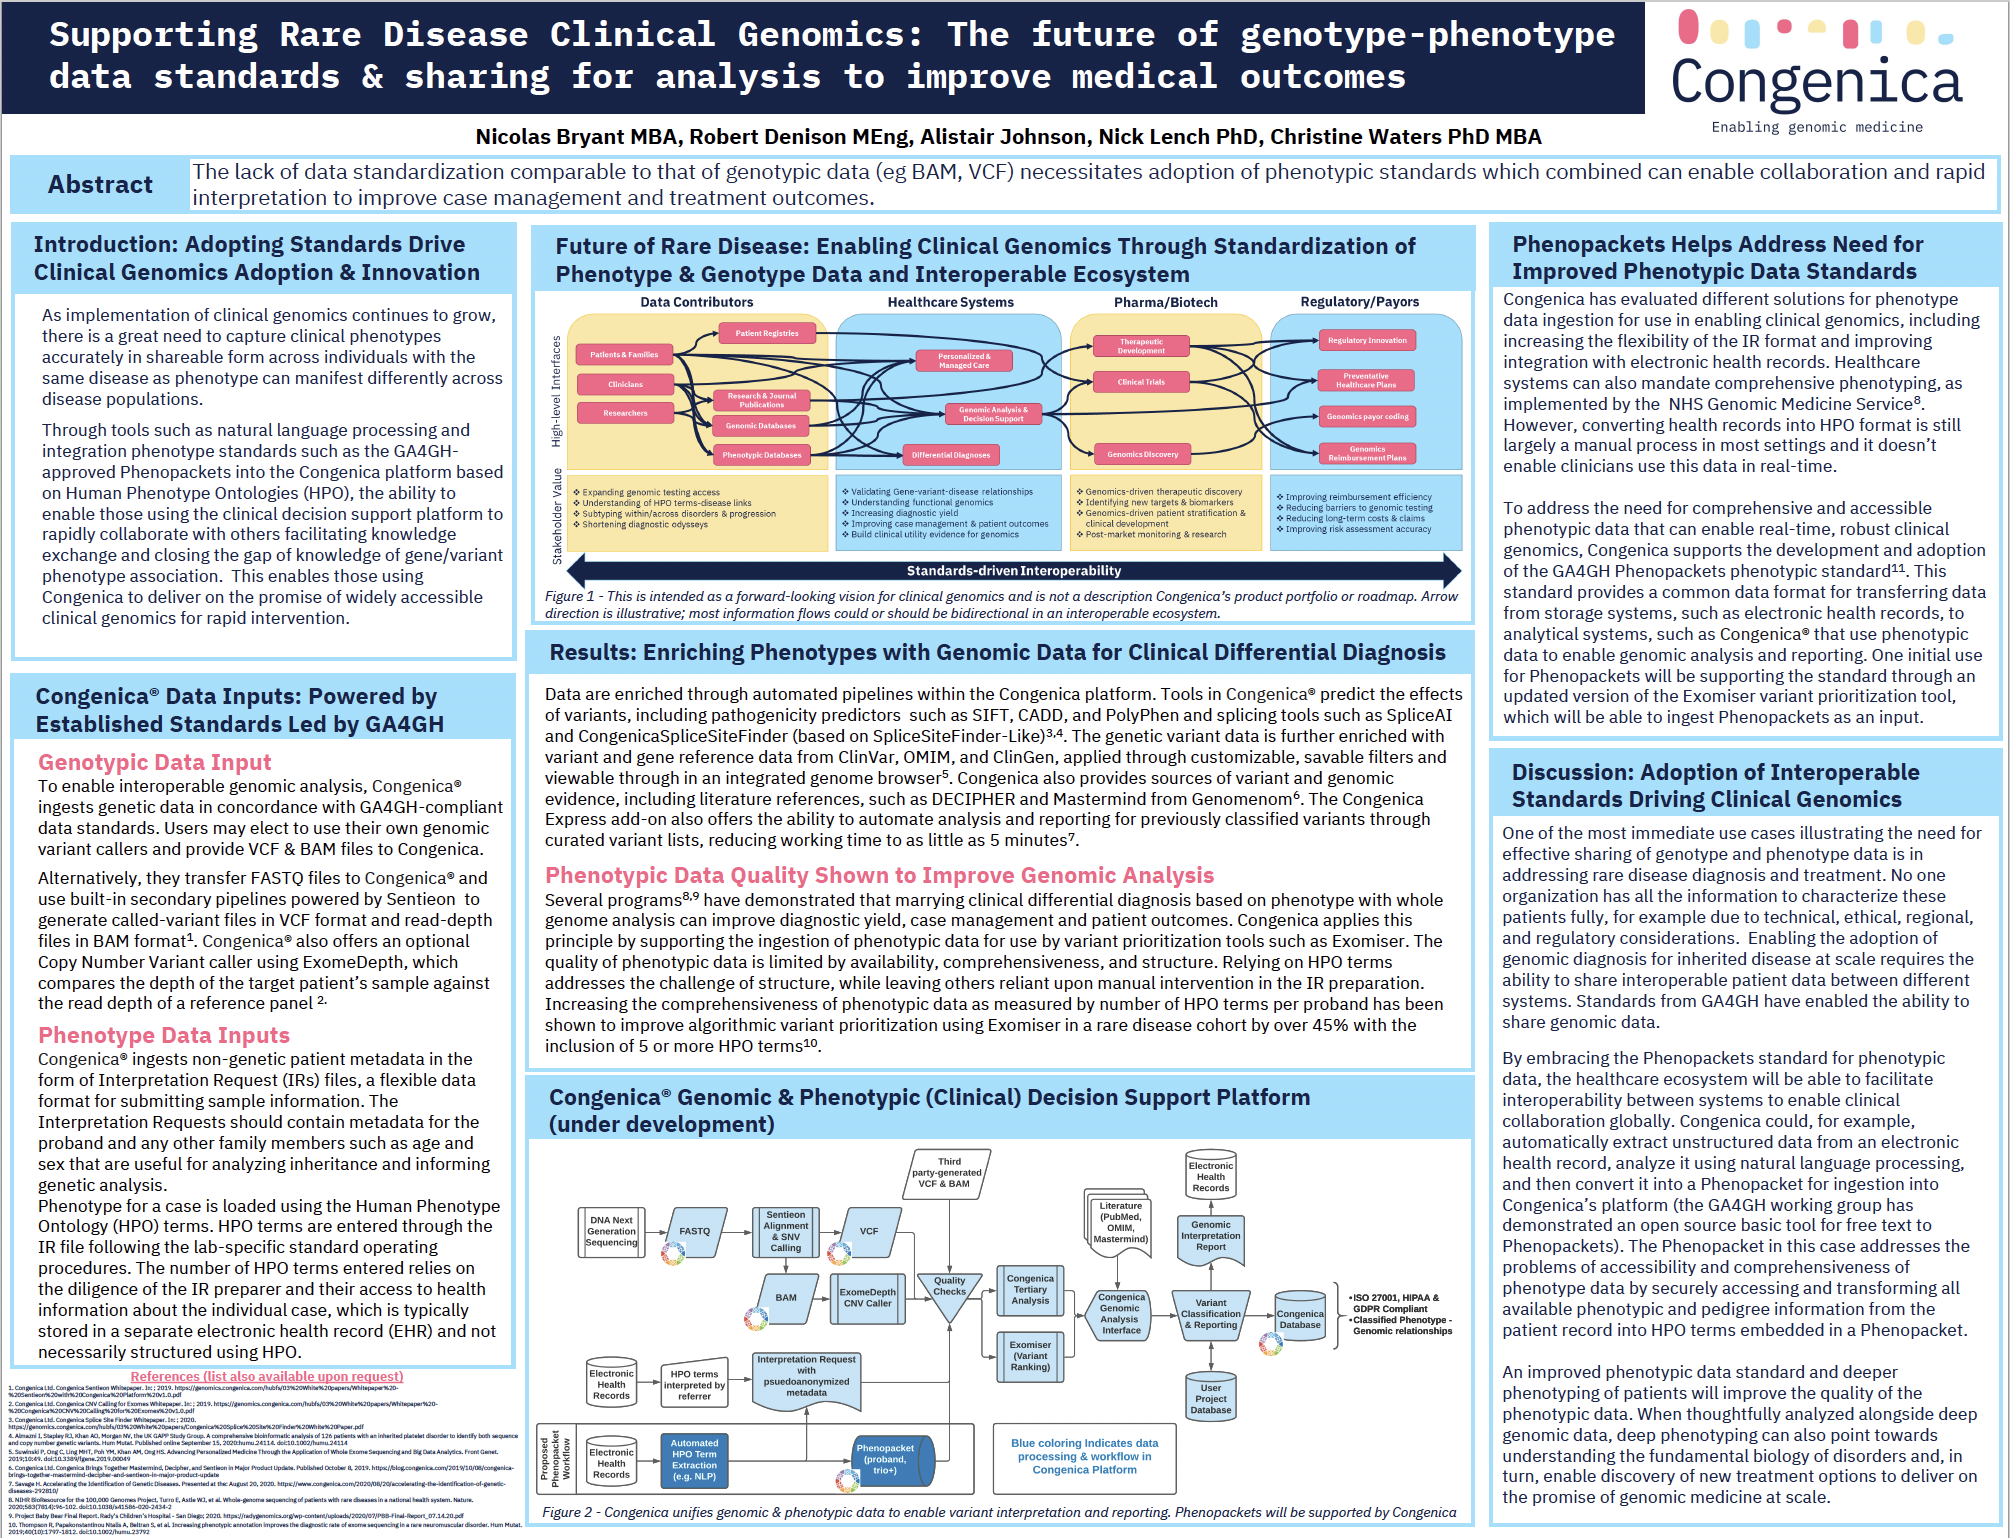 The future of genotype-phenotype data standards to improve outcomes